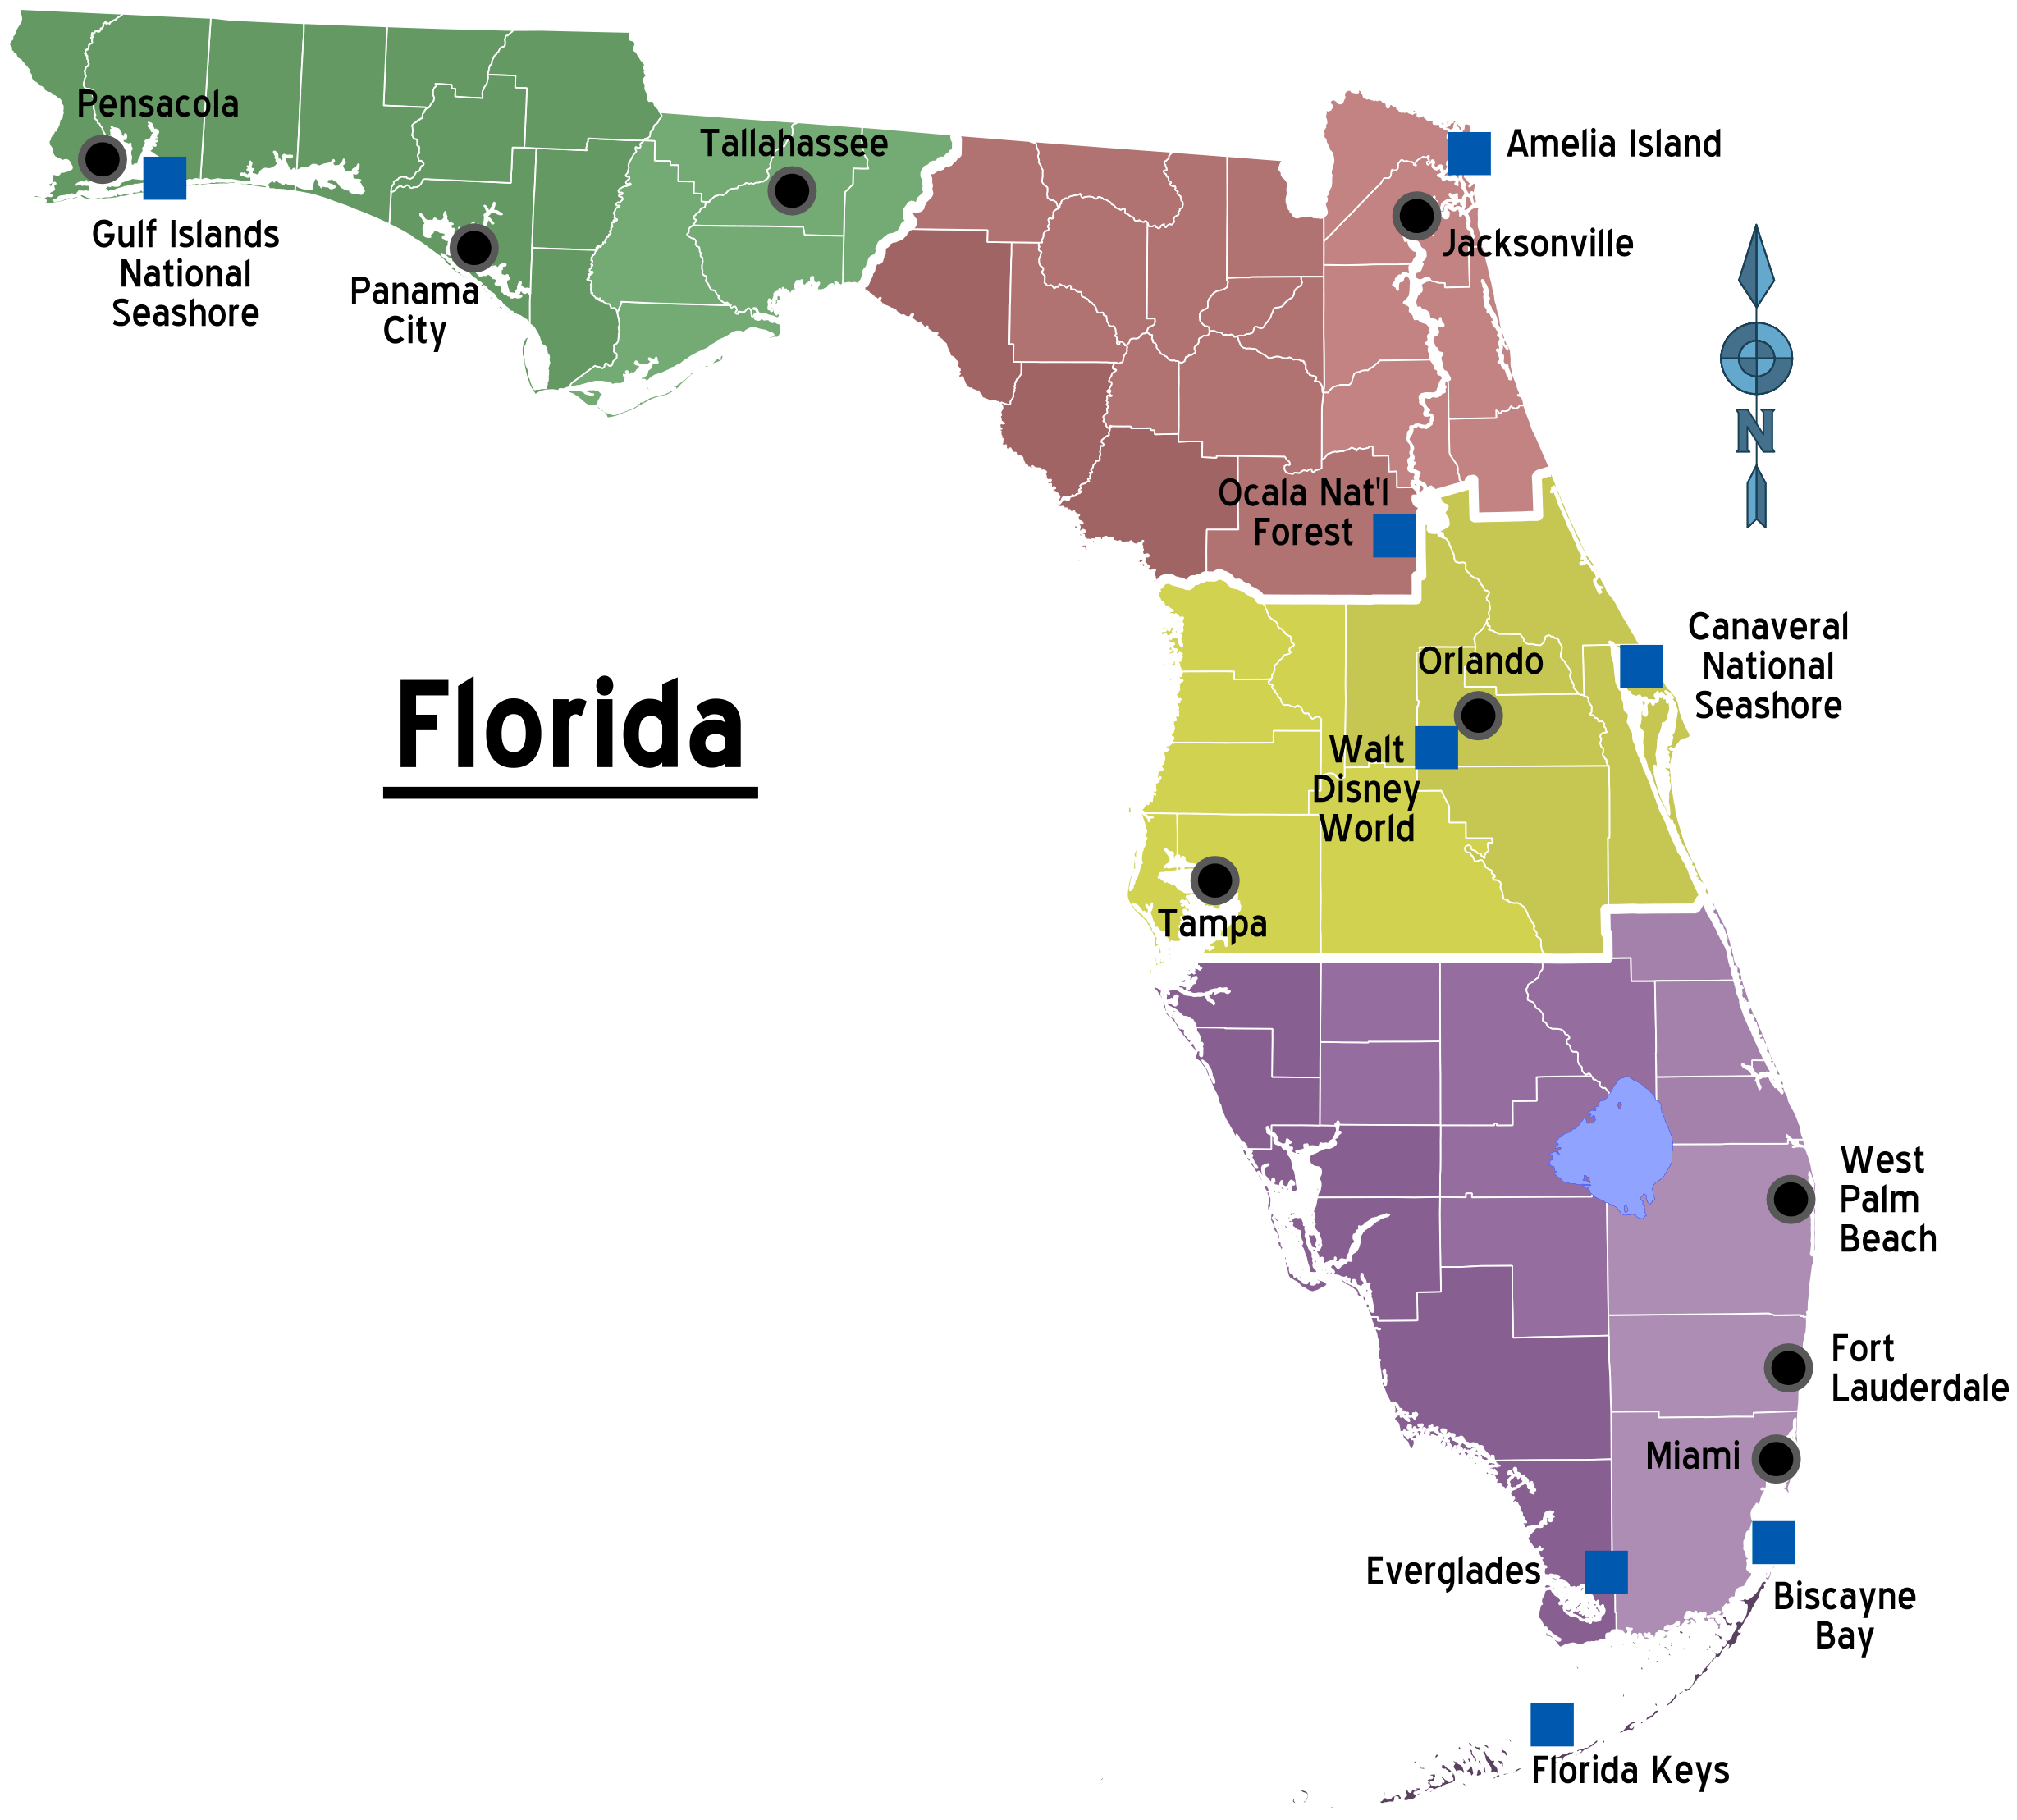 Cities In Florida Map Florida Regions Map With Cities • Mapsof.net